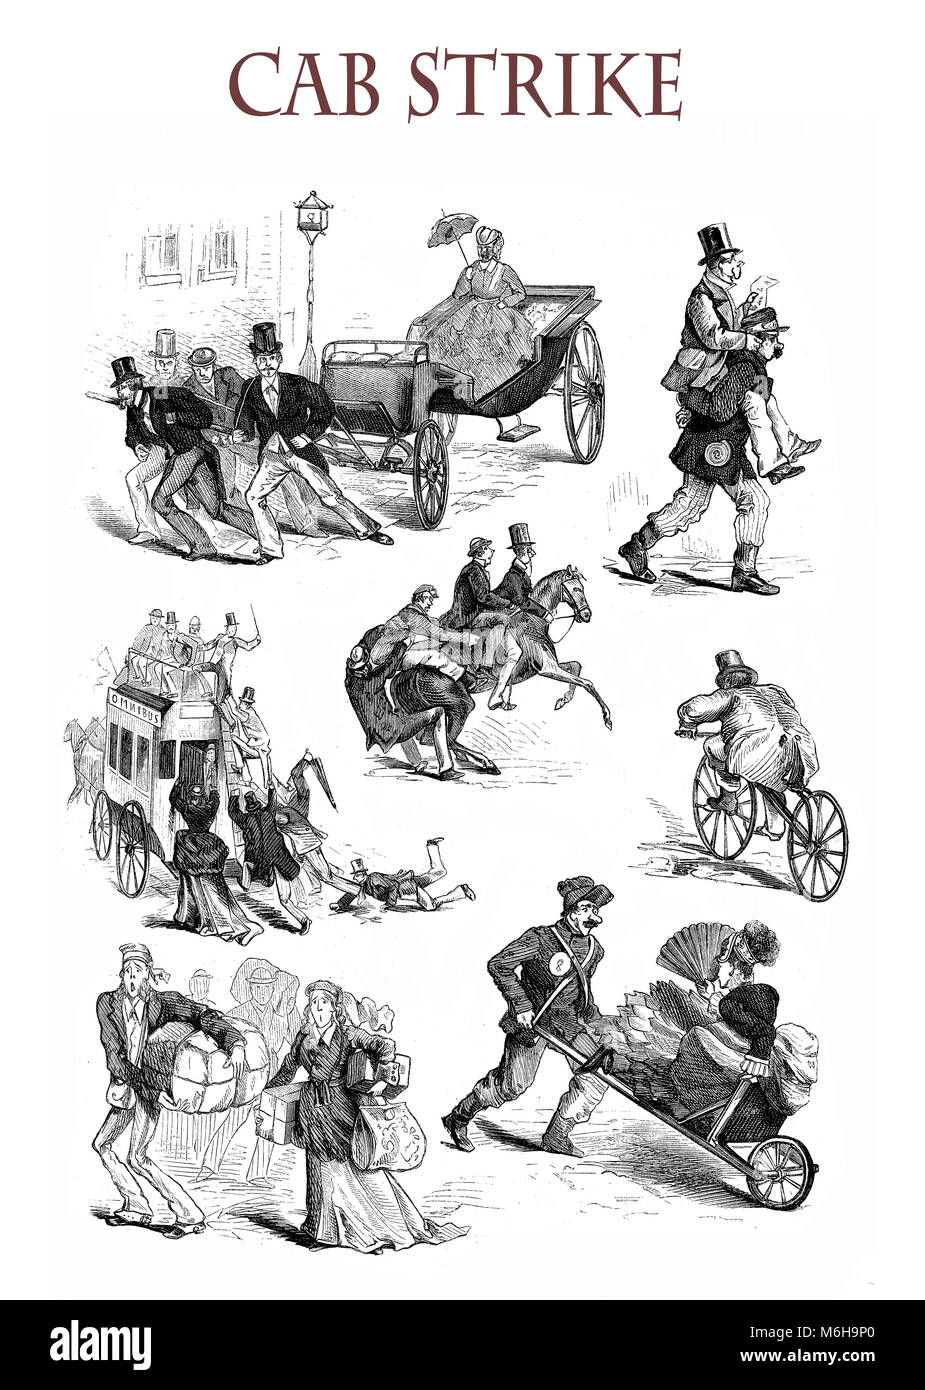 Cab strike, no horses, funny situations and caricatures, XIX century illustration - Stock Image